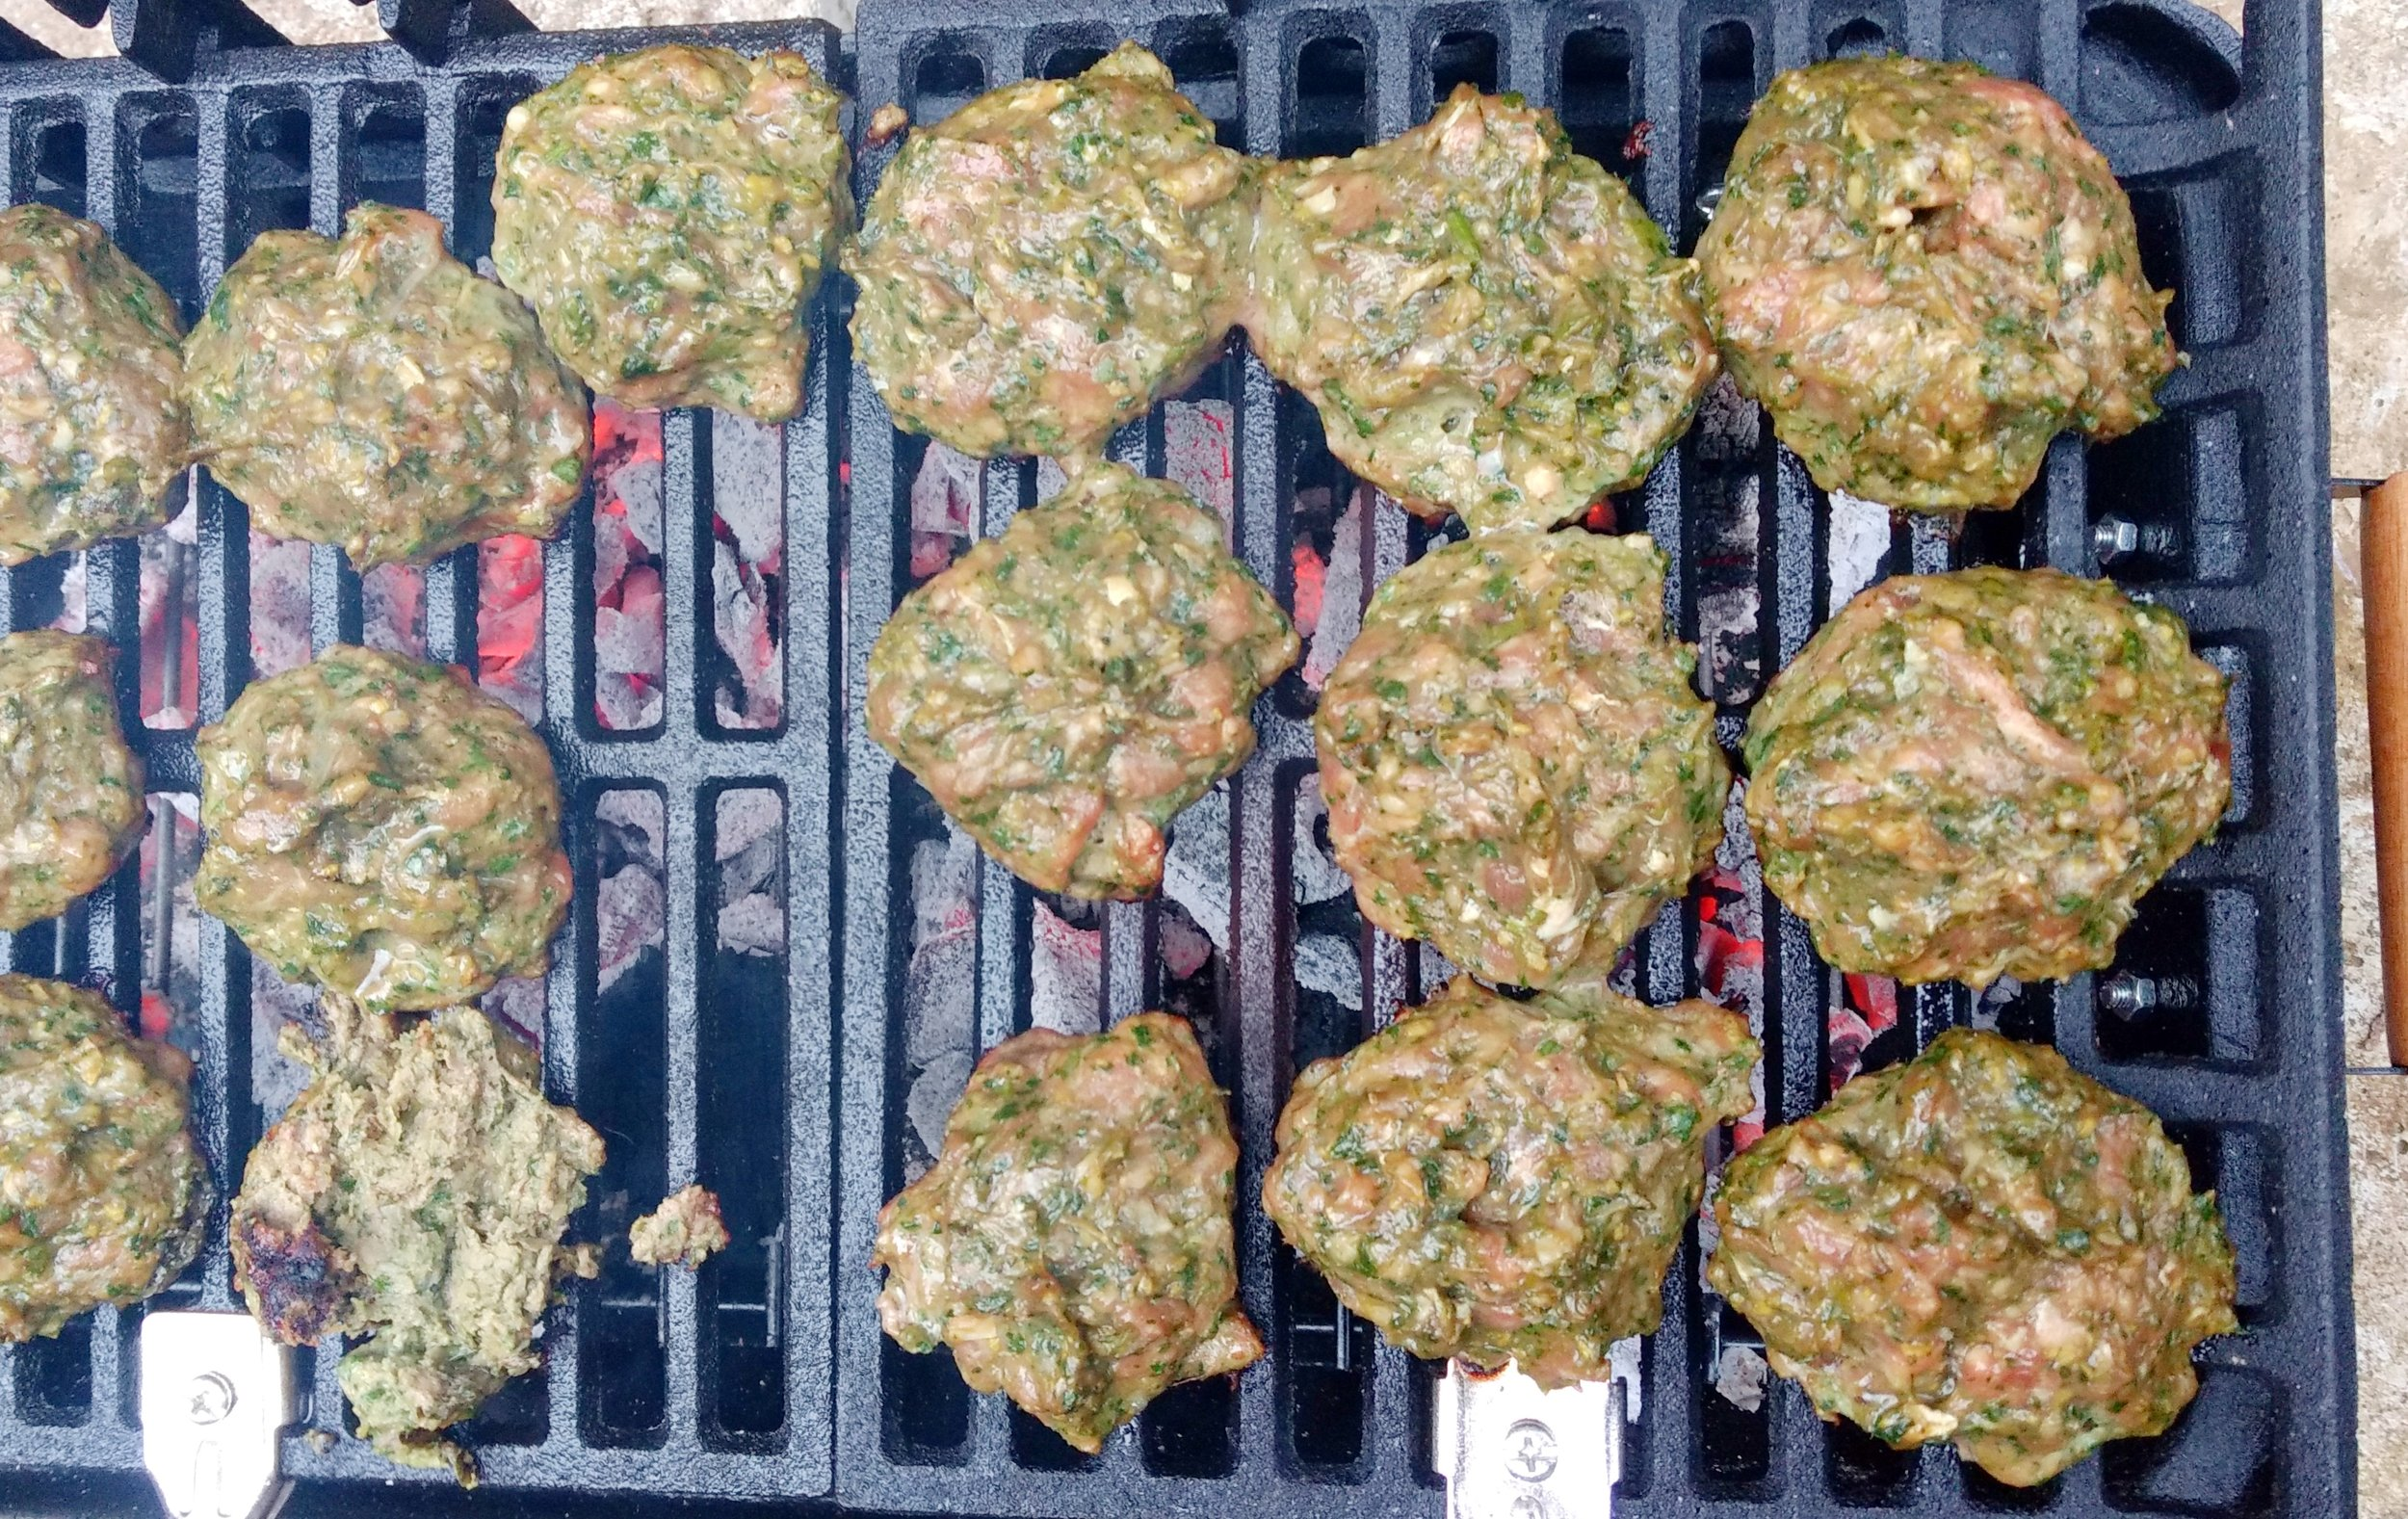 6- Or prepare a medium-hot fire in a charcoal grill or preheat a gas grill (we use the habachi pictured above). Grill the patties for about 4 minutes per side, or until done as you like. Serve with cauliflower rice and veggies sides. I made a fermented carrot salad and lemon radishes.